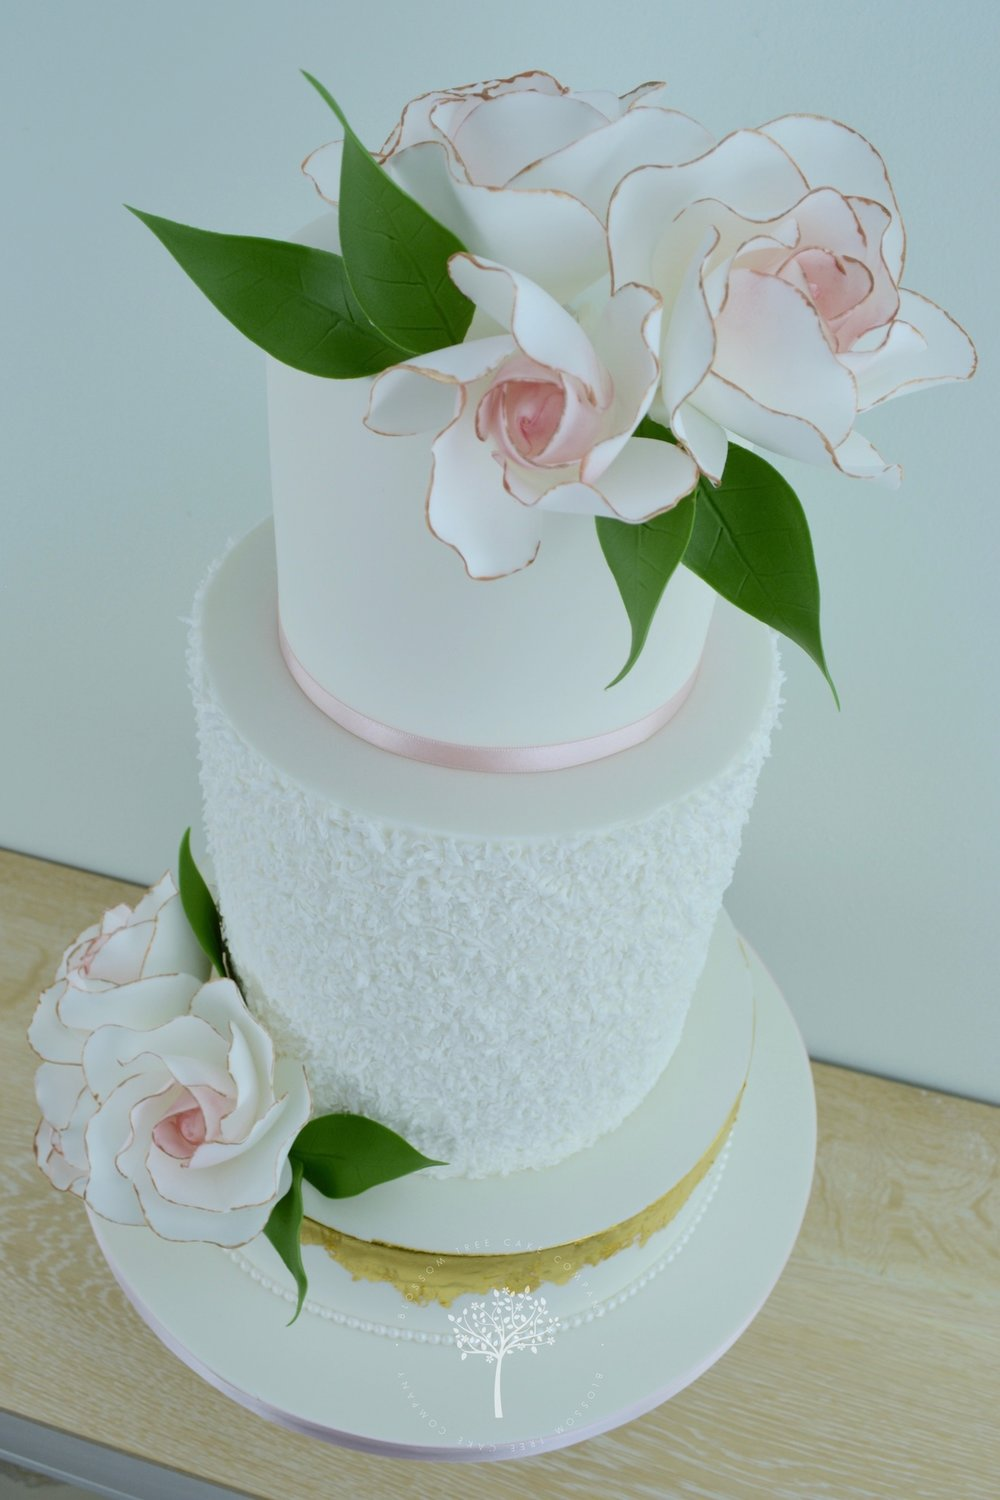 Blush Roses wedding cake by Blossom Tree Cake Company Harrogate North Yorkshire - angle.jpg